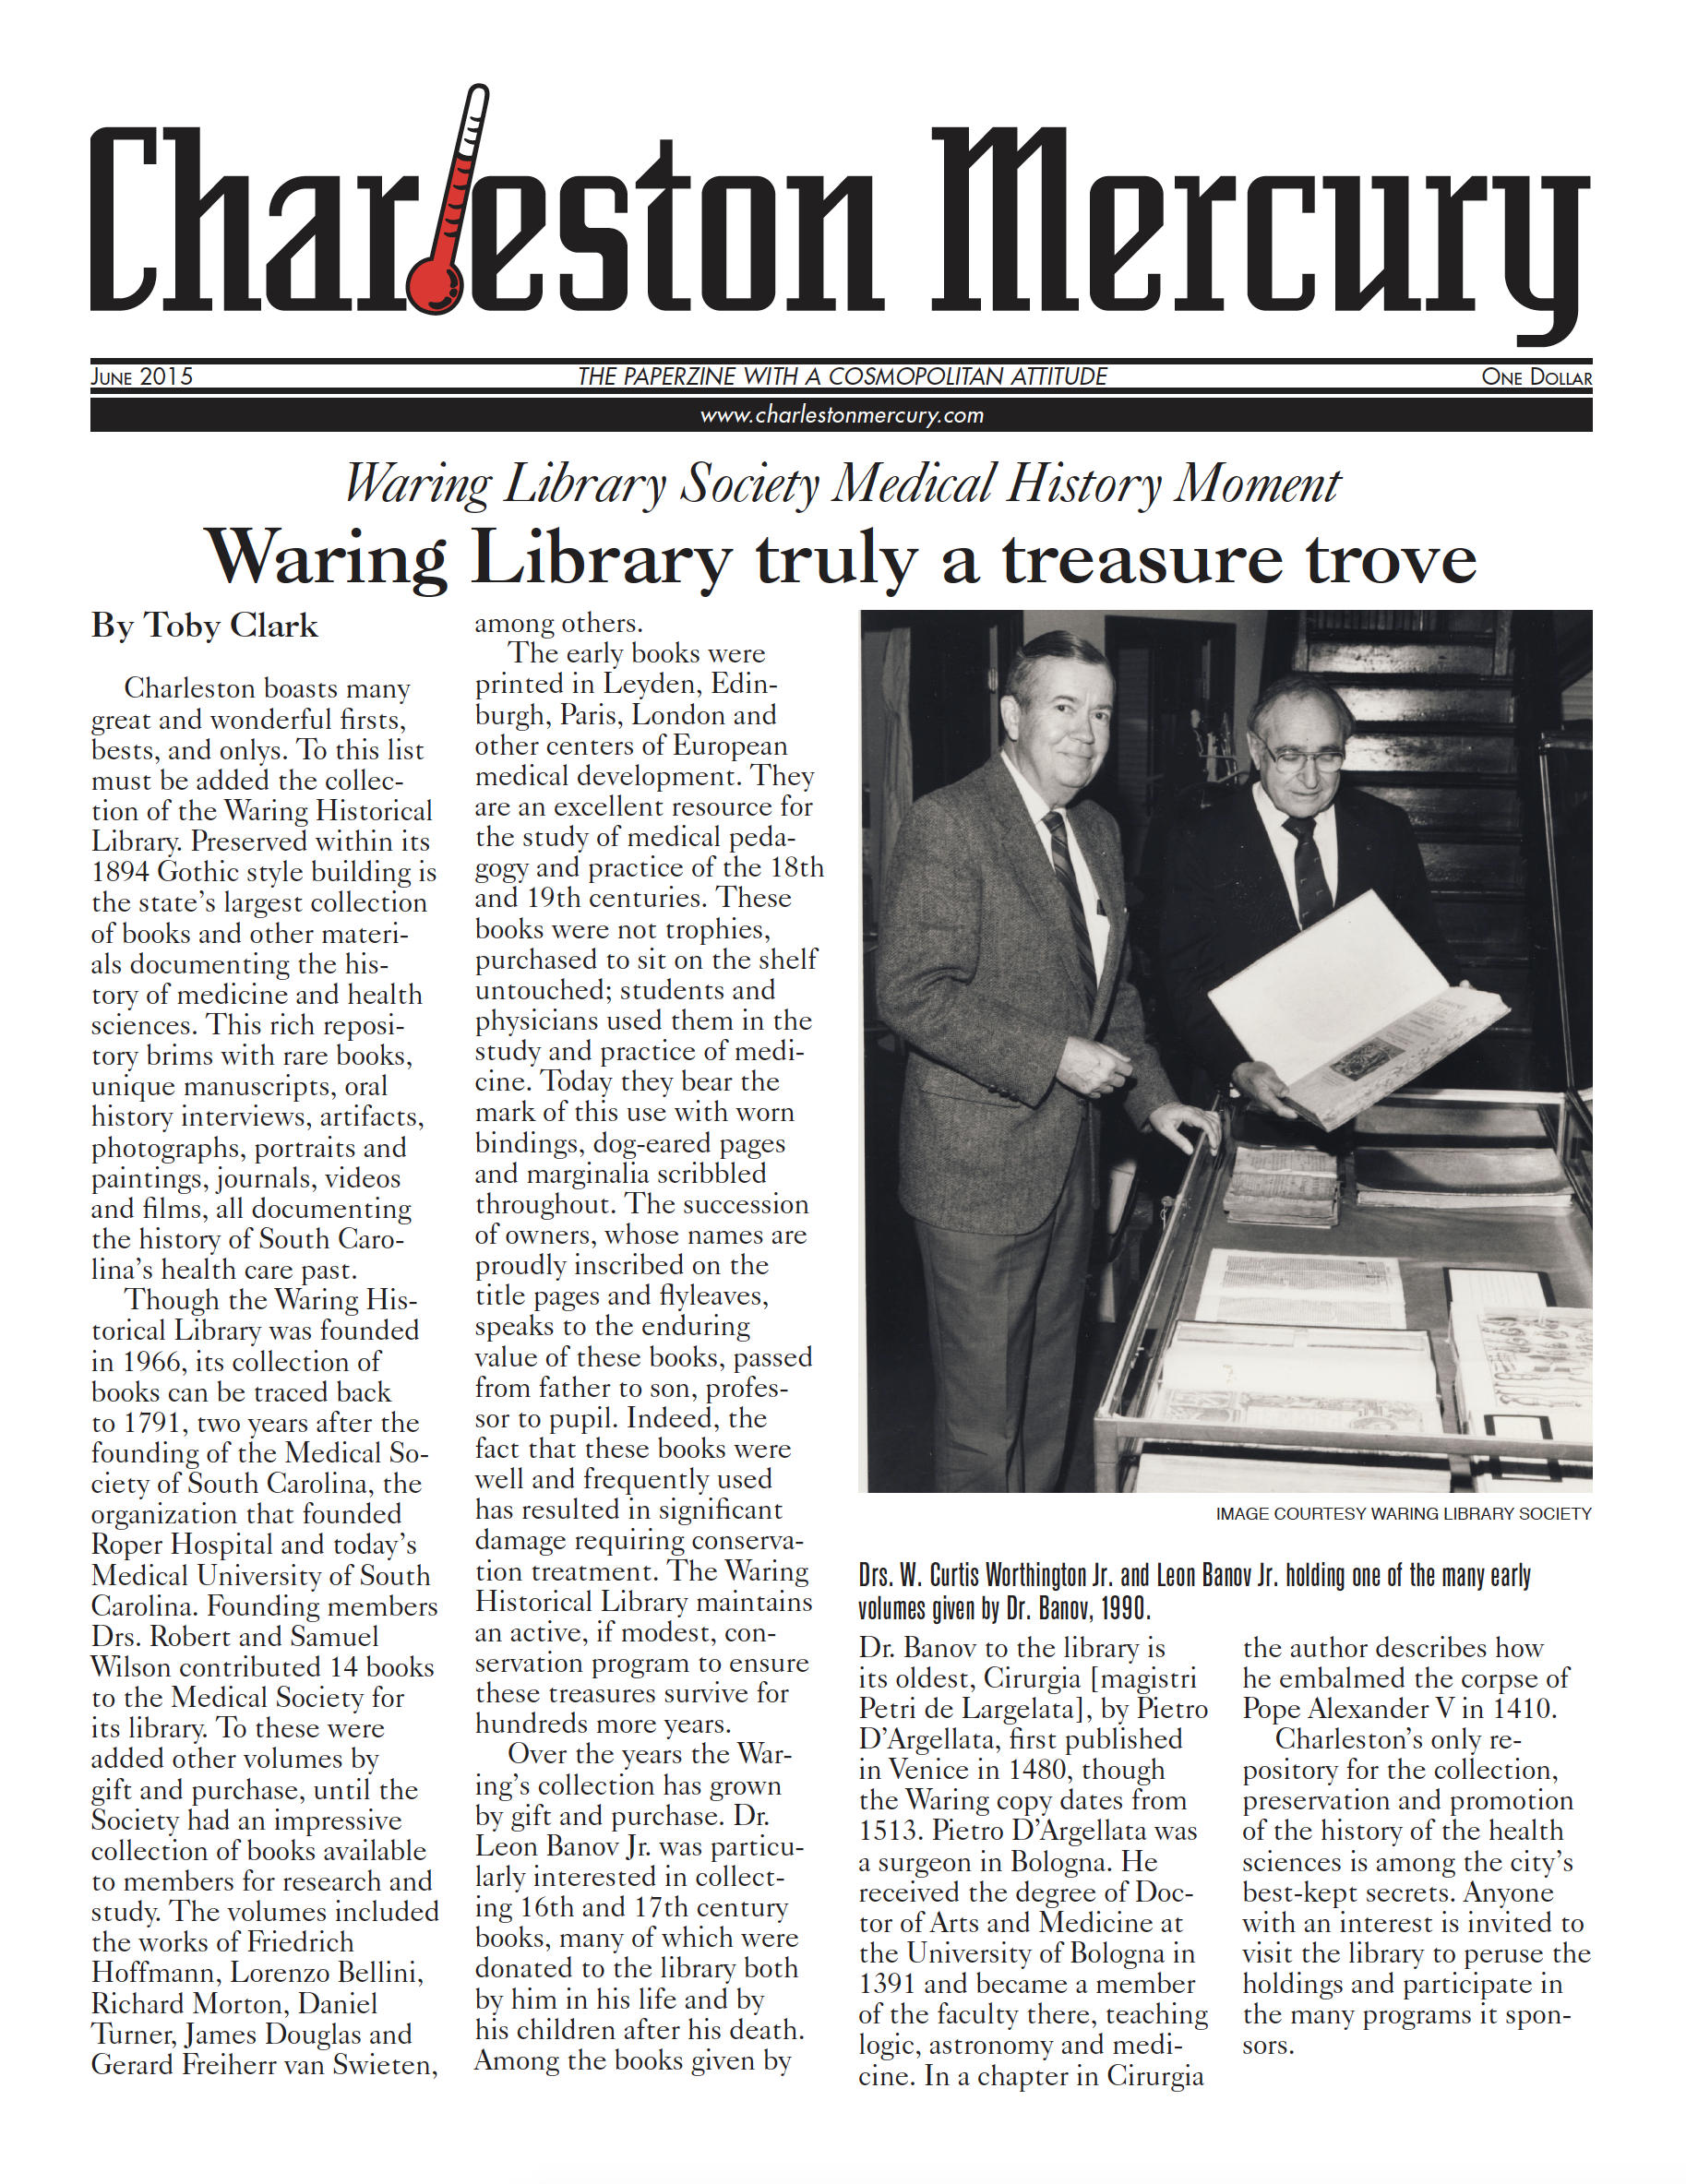 Charleston Mercury, June 2015